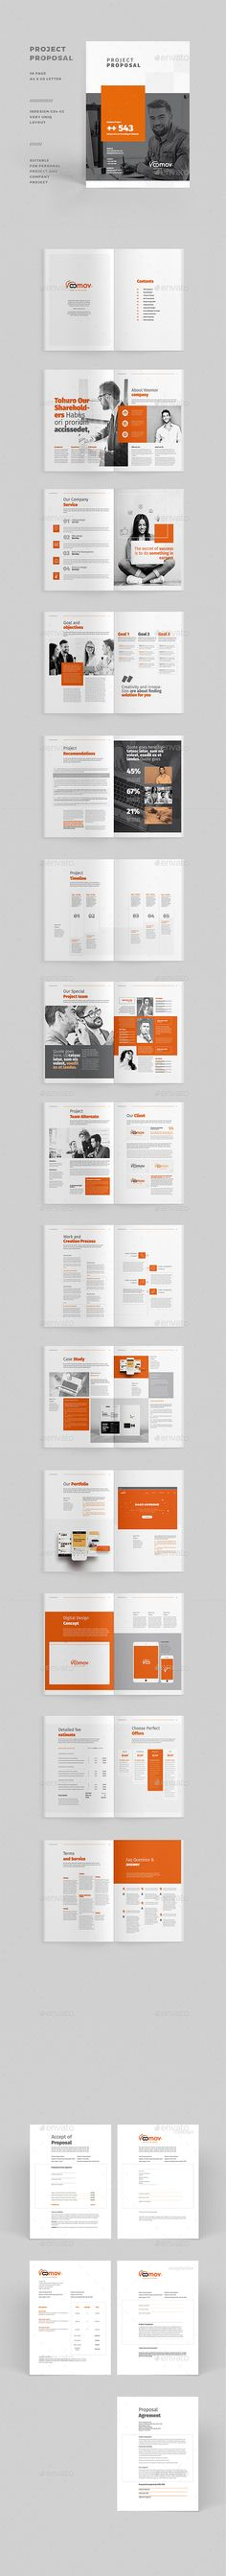 Proposal — InDesign INDD #visual #light • Download ➝ https://graphicriver.net/item/proposal/18906953?ref=pxcr